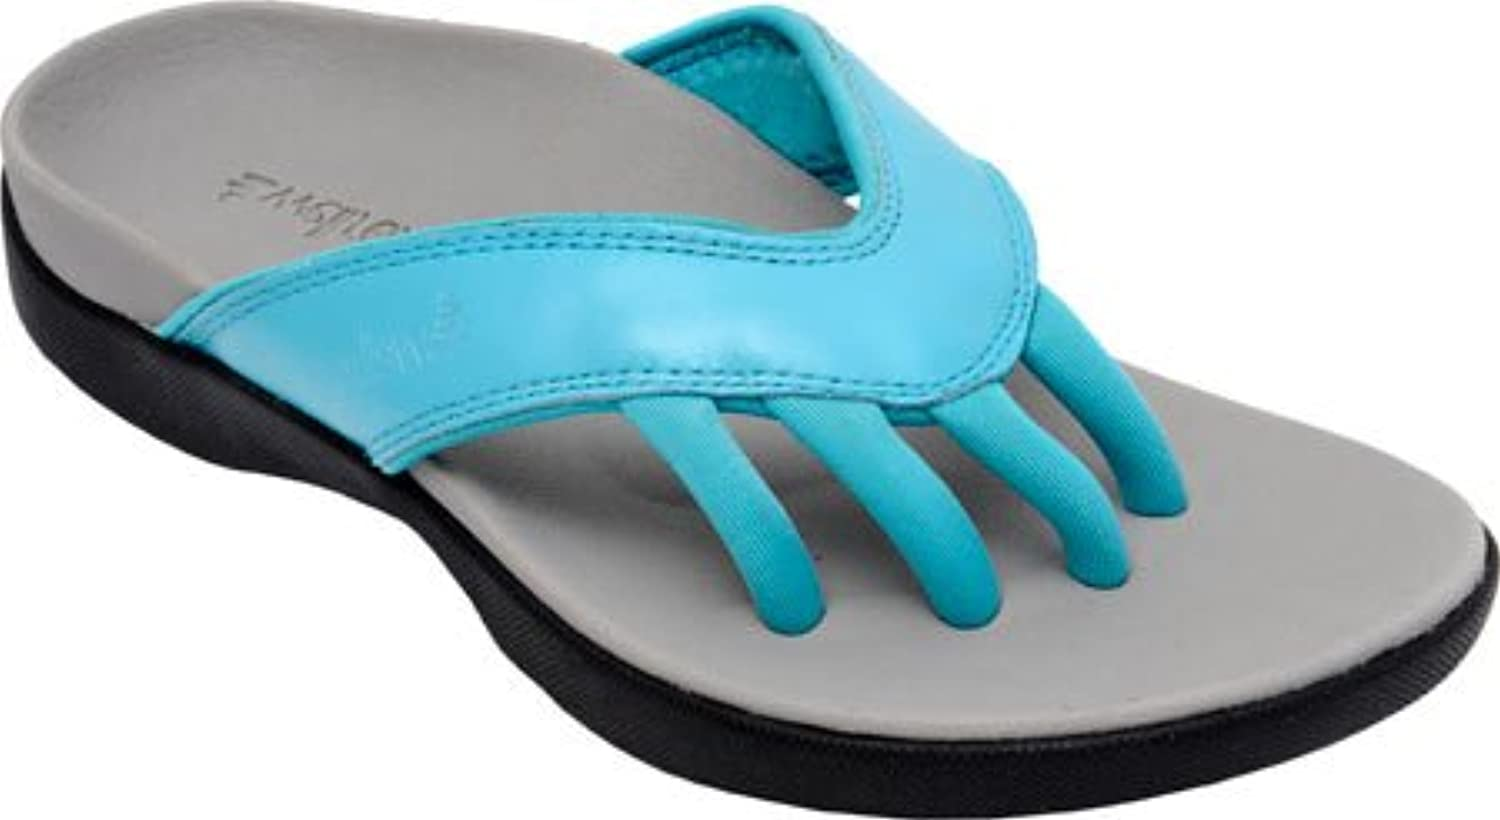 Wellrox Women's Evo-Cloud2 Wellness Casual Sandals